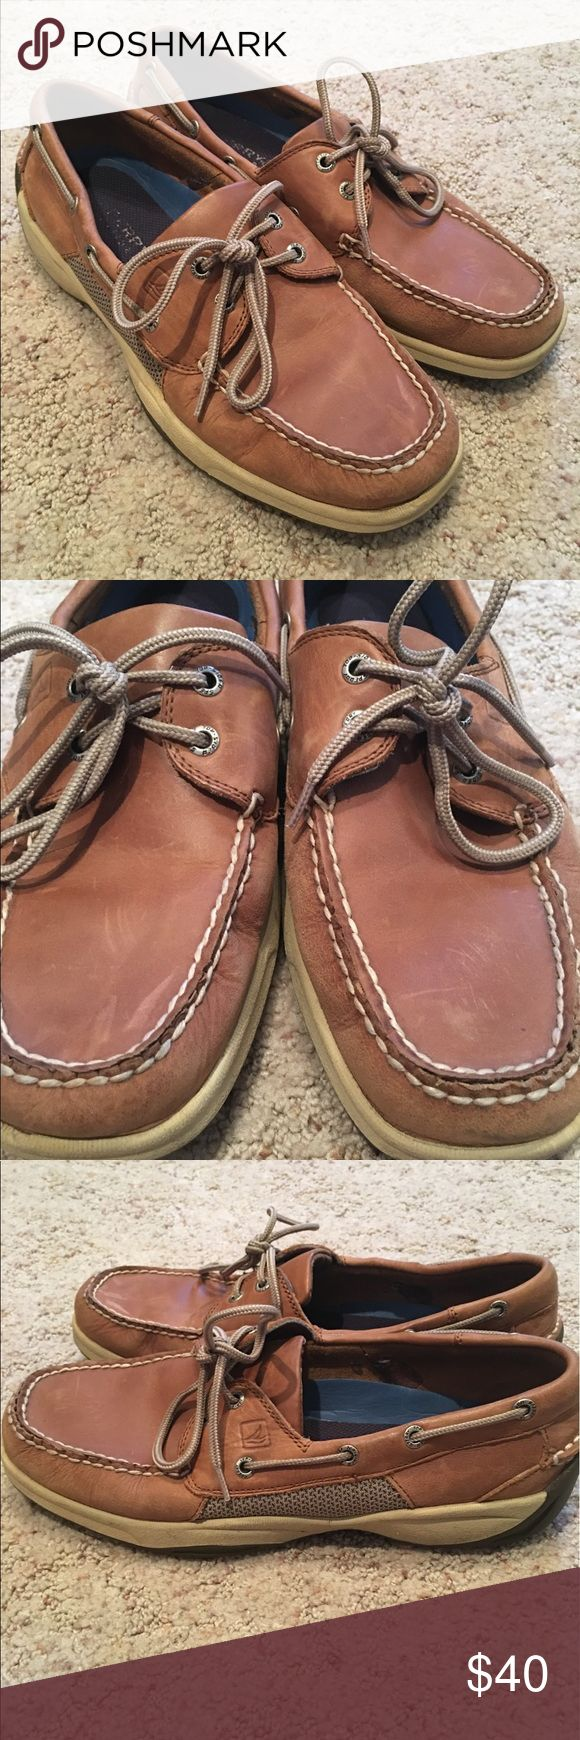 Original Brown Sperry Topsider These have a great classic look! There is normal wear on the top of the leather but nothing a little shoe polish won't get rid of. I loved these shoes but don't wear them as much as I would like. Sperry Shoes Boat Shoes